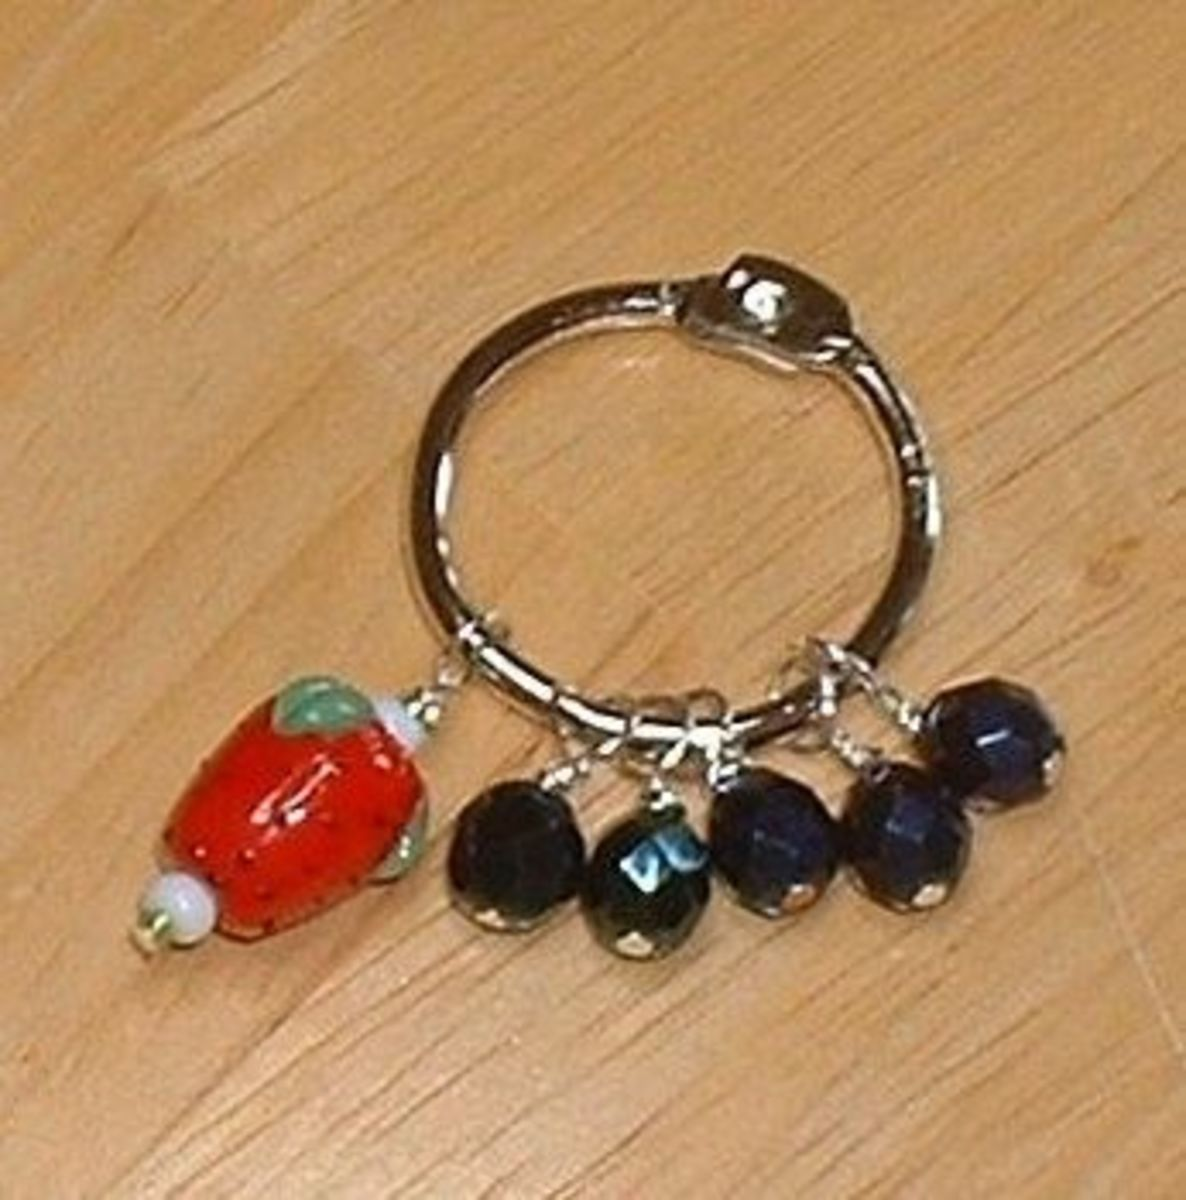 Strawberry and blueberries stitch markers made with  a ceramic strawberry bead and Czech glass faceted beads. All photos here by Peggy Hazelwood.